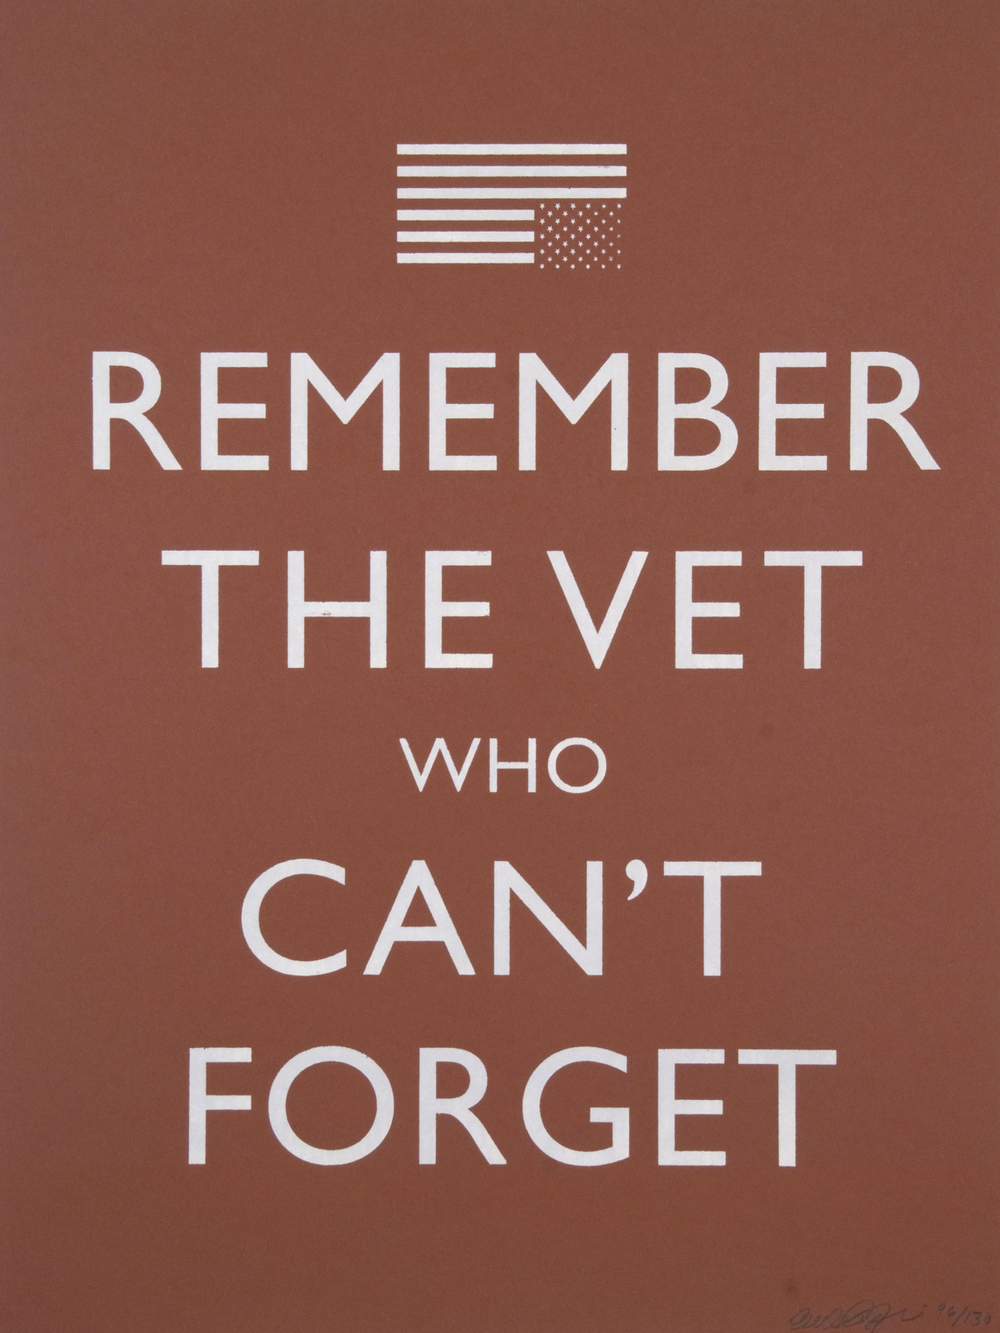 33 Remeber the Vet Who Cant Forget by Michael Rakowitz.jpg